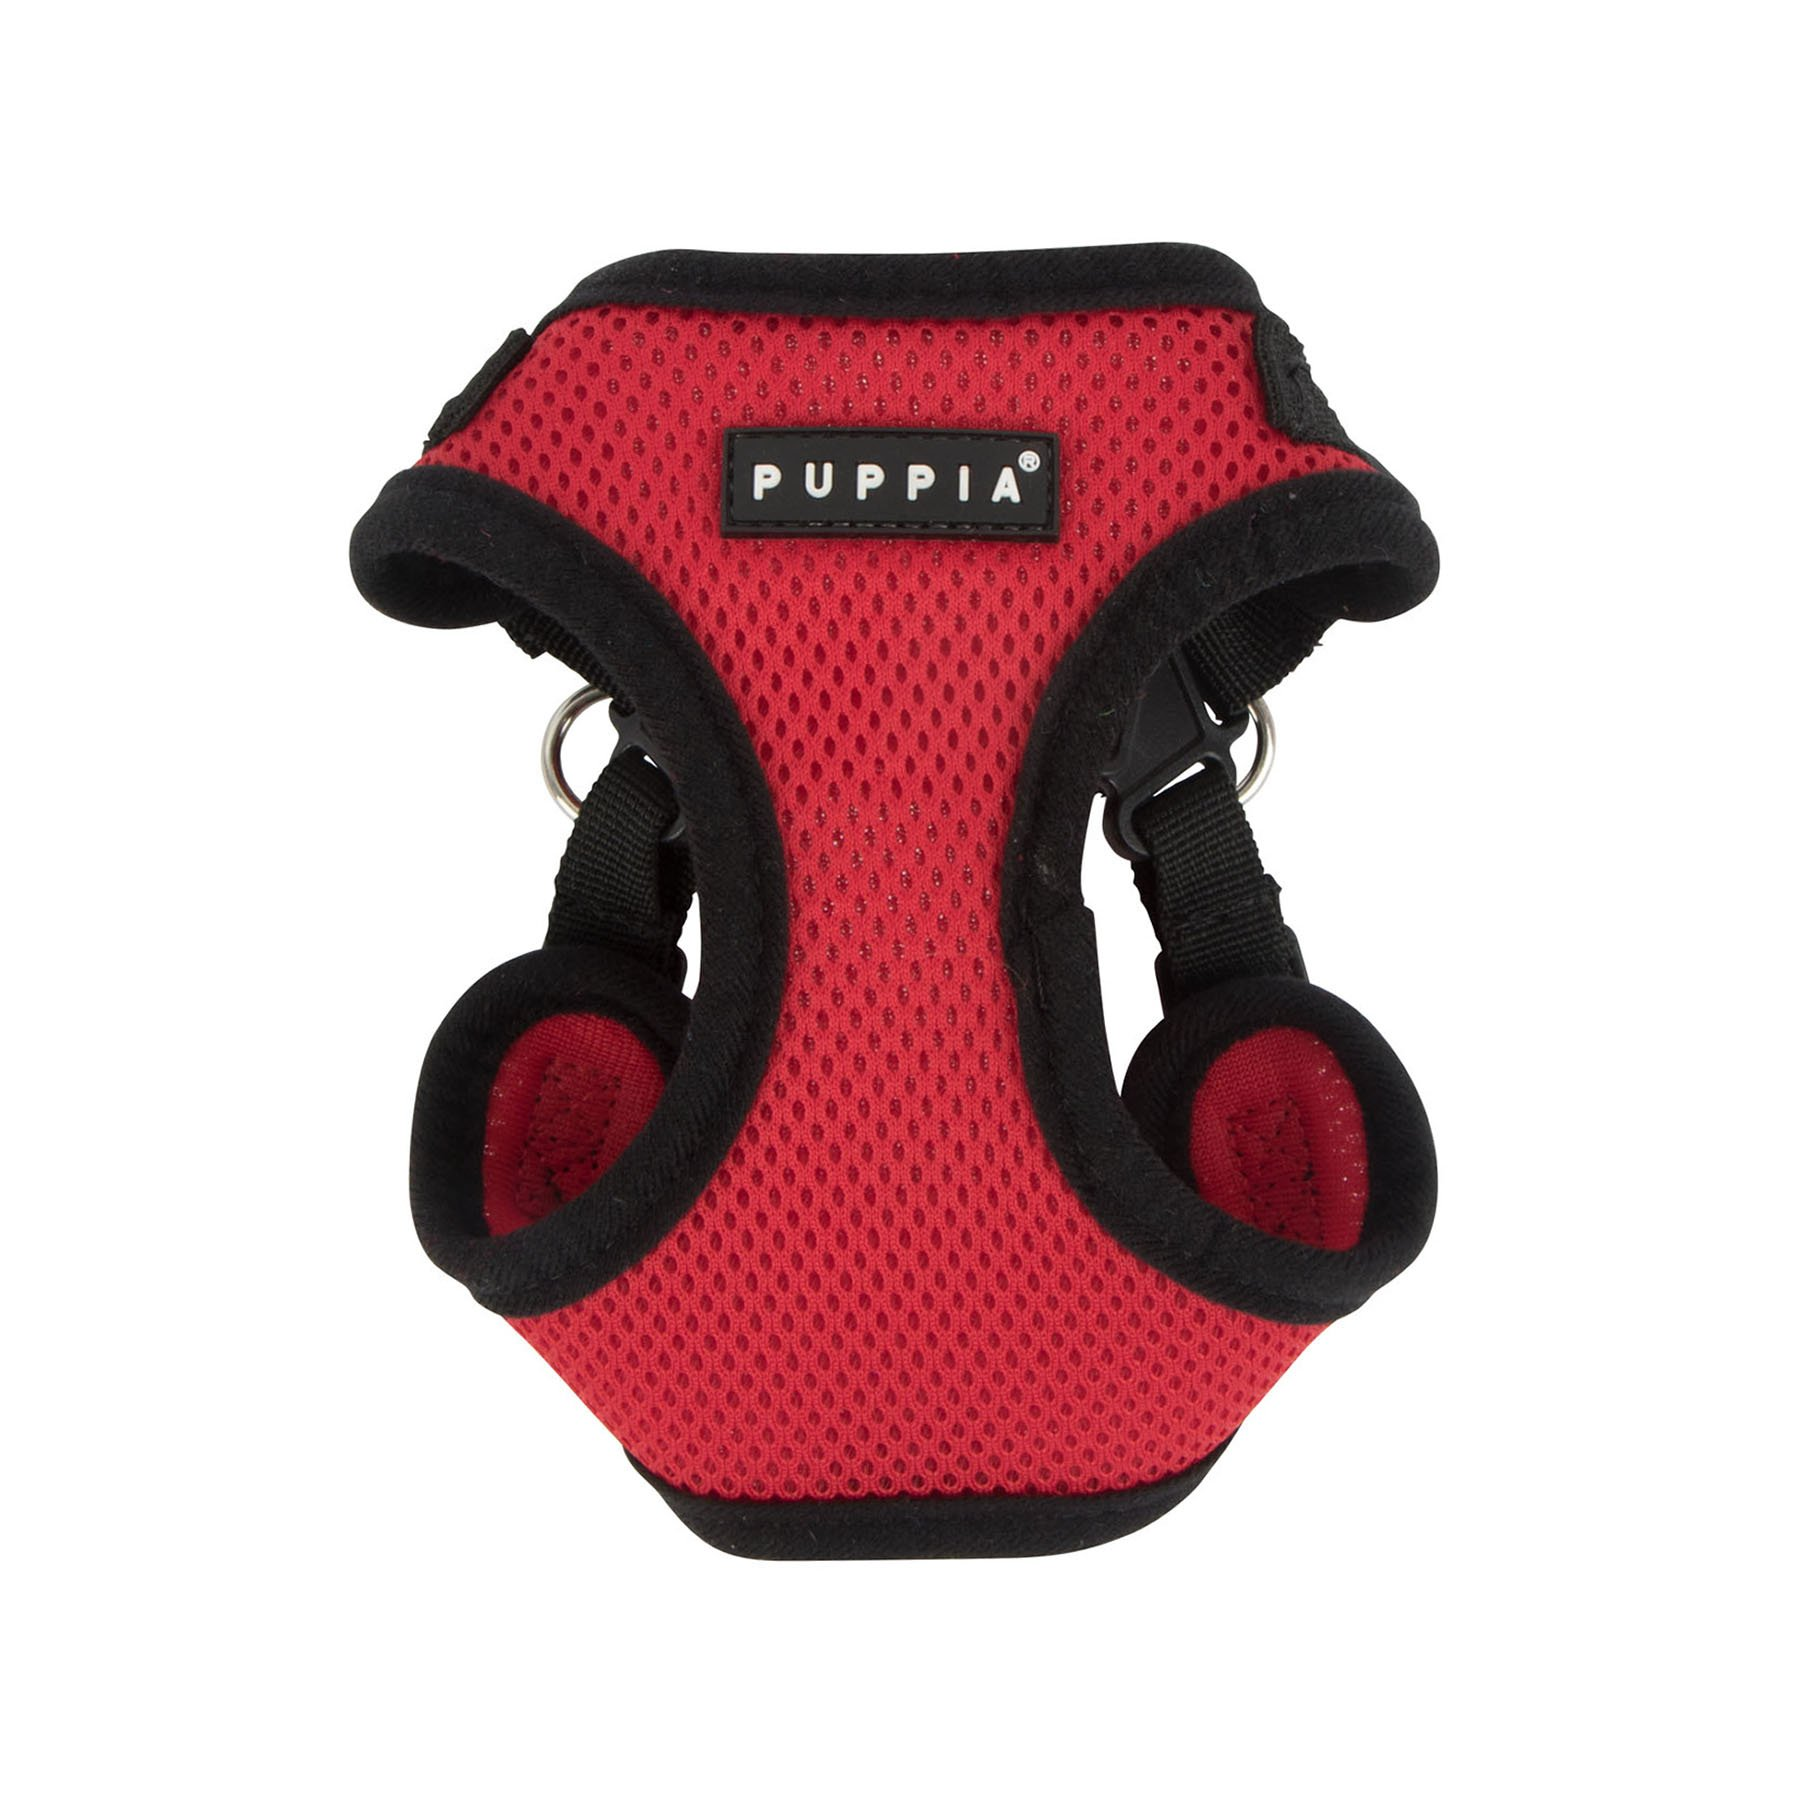 Puppia PARA-HC1533-RD-S Red Soft Harness C Pet-Vest-Harnesses, Small